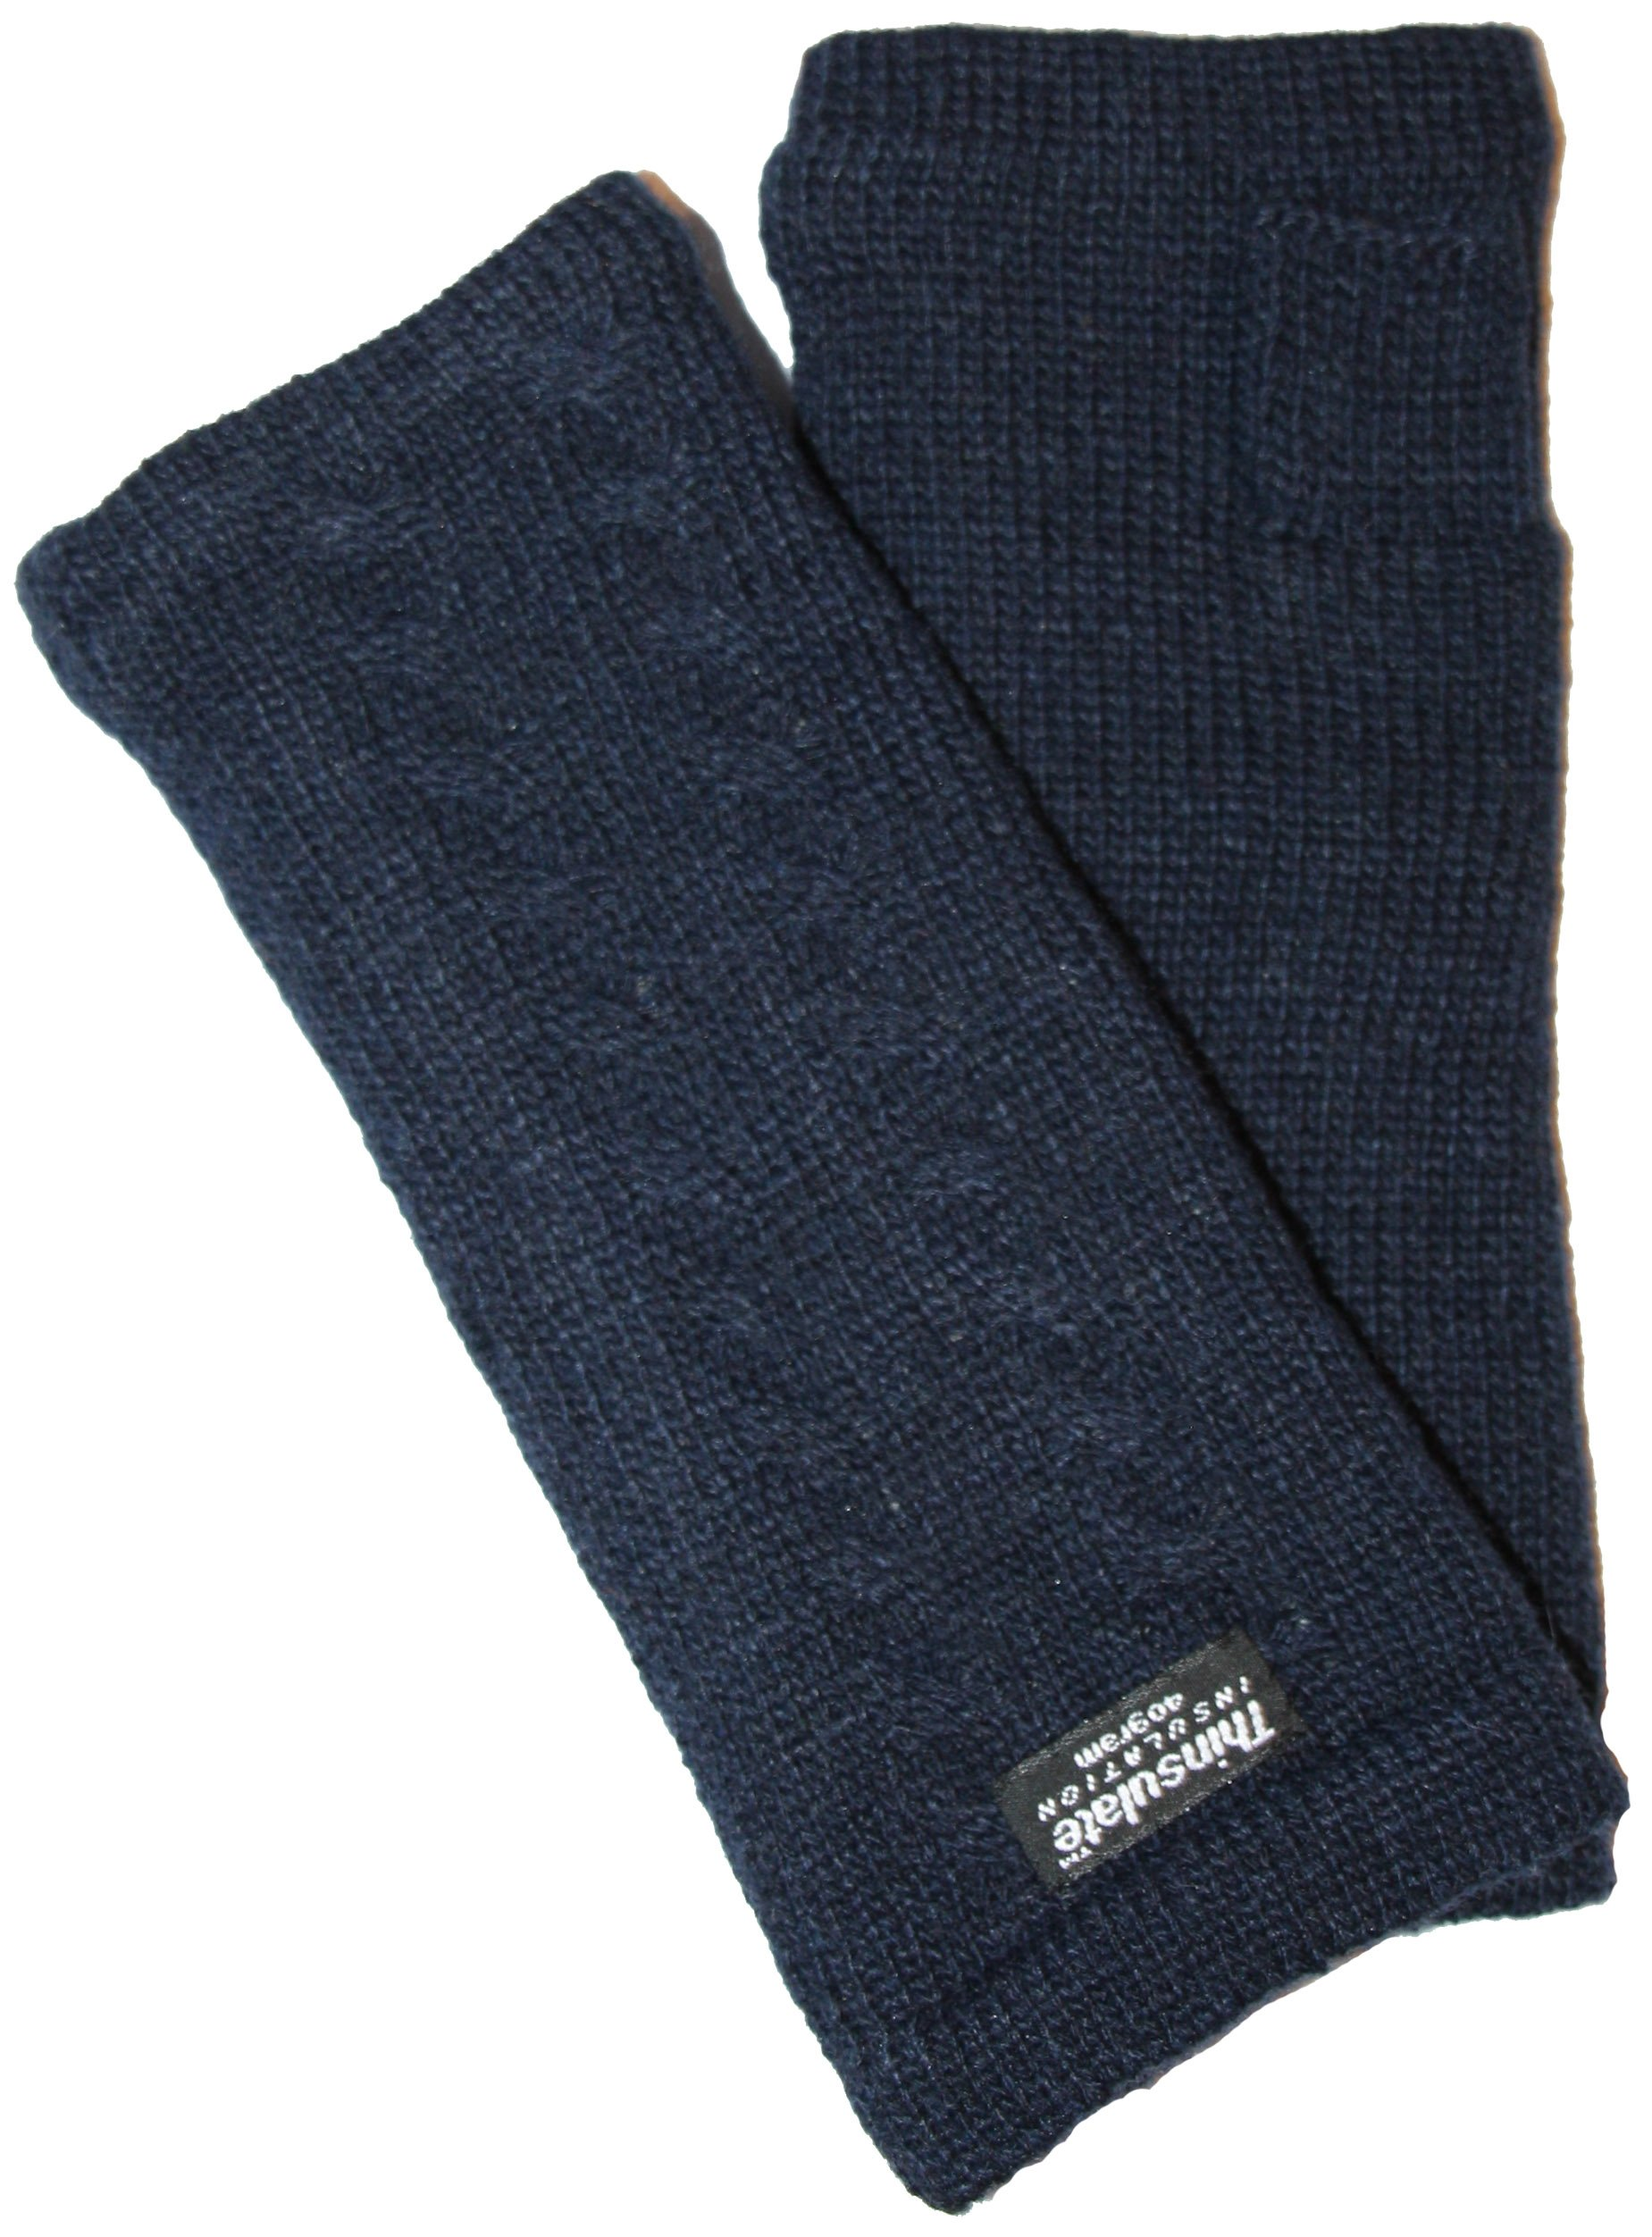 EEM knitted arm warmers DIANA made of 100% wool, Thinsulate lining, plait pattern, navy